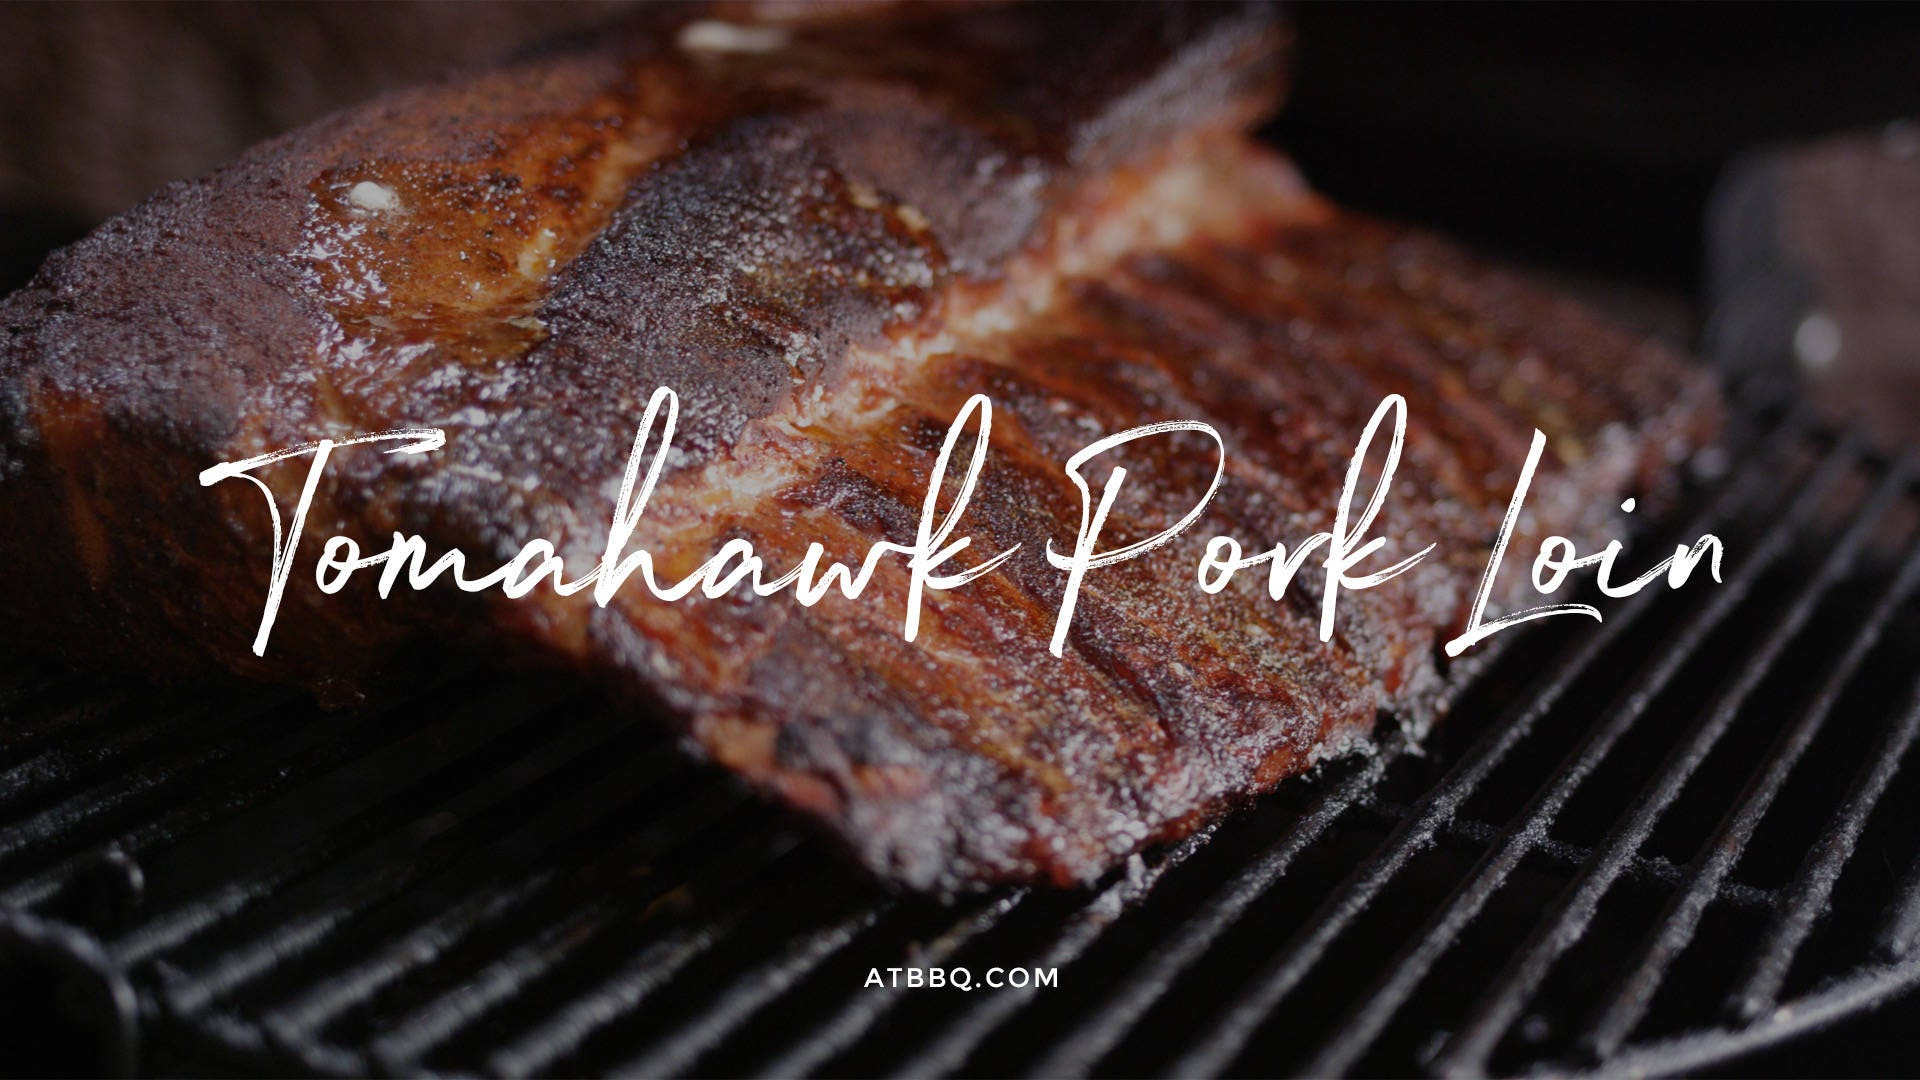 How to make Tomahawk Pork Loin